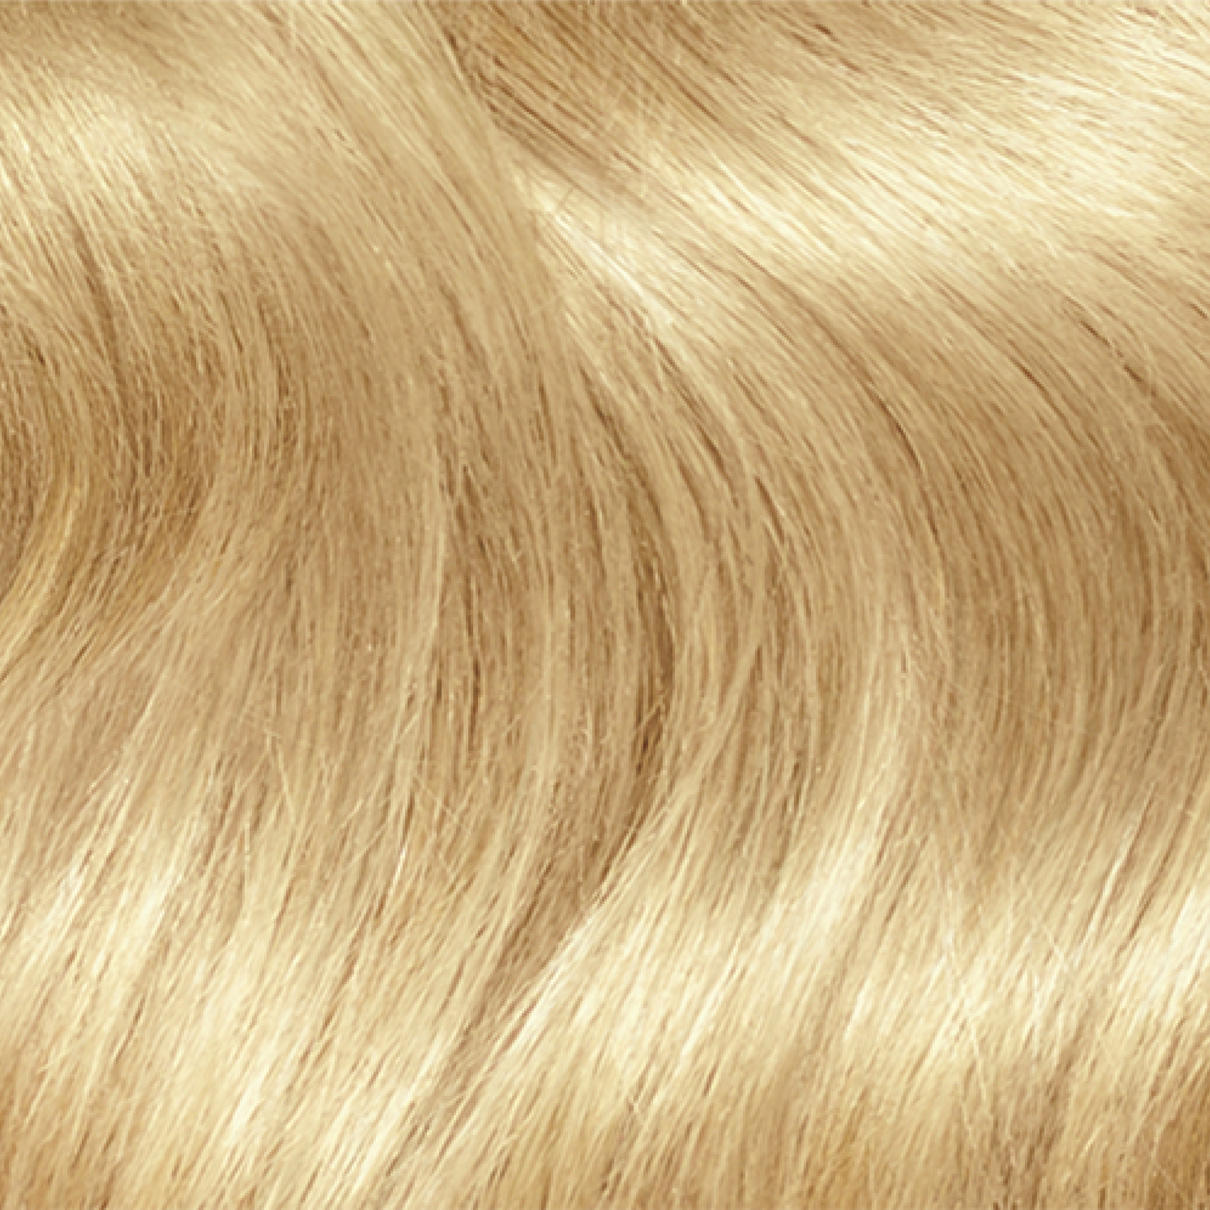 Permanent hair color clairol nice n easy 10 extra light blonde nvjuhfo Image collections